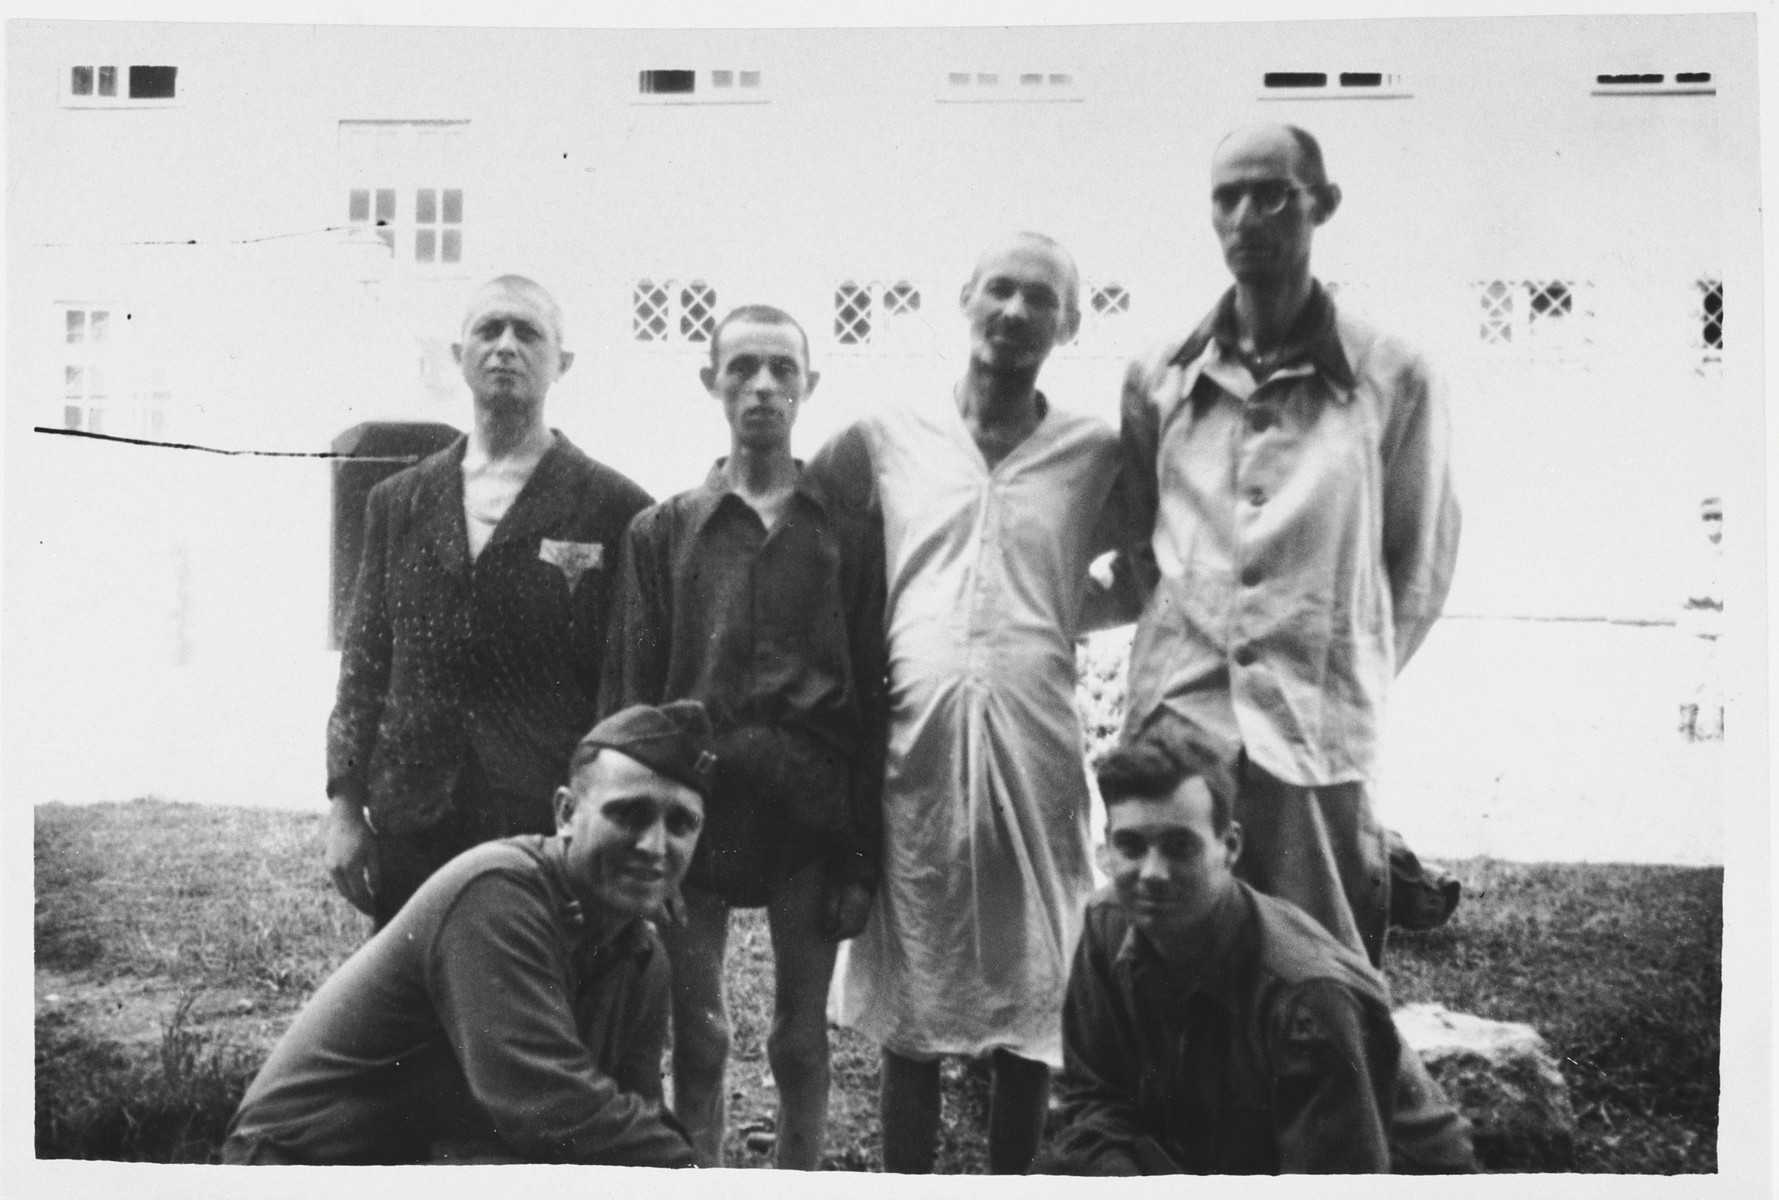 Four survivors of Dachau and Buchenwald pose with Pfc. Robert Kenser and another U.S. soldier at a medical facility in Garmisch-Partenkirchen, where they have come to convalesce.